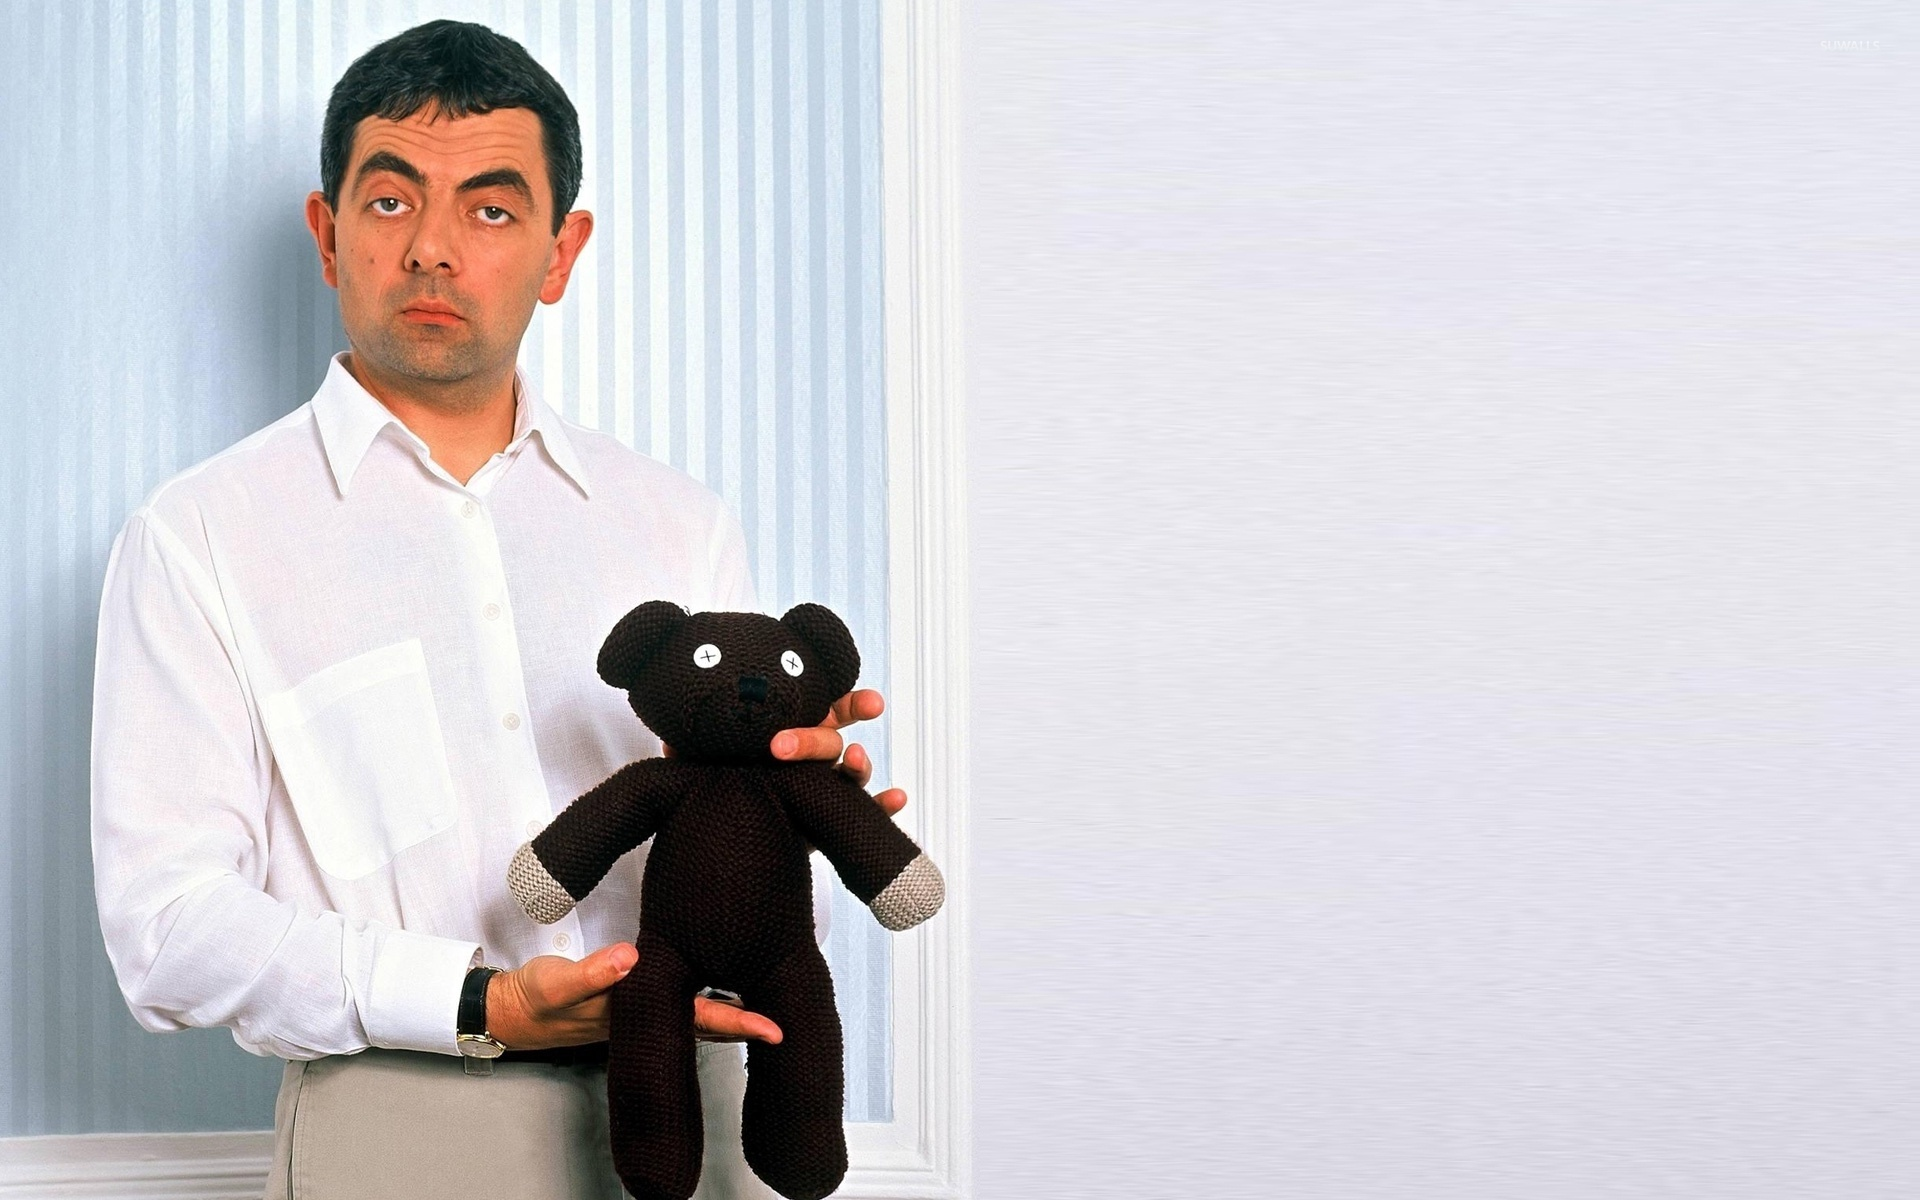 Game Of Thrones Quotes Wallpaper 1920x1080 Mr Bean With His Teddy Bear Wallpaper Tv Show